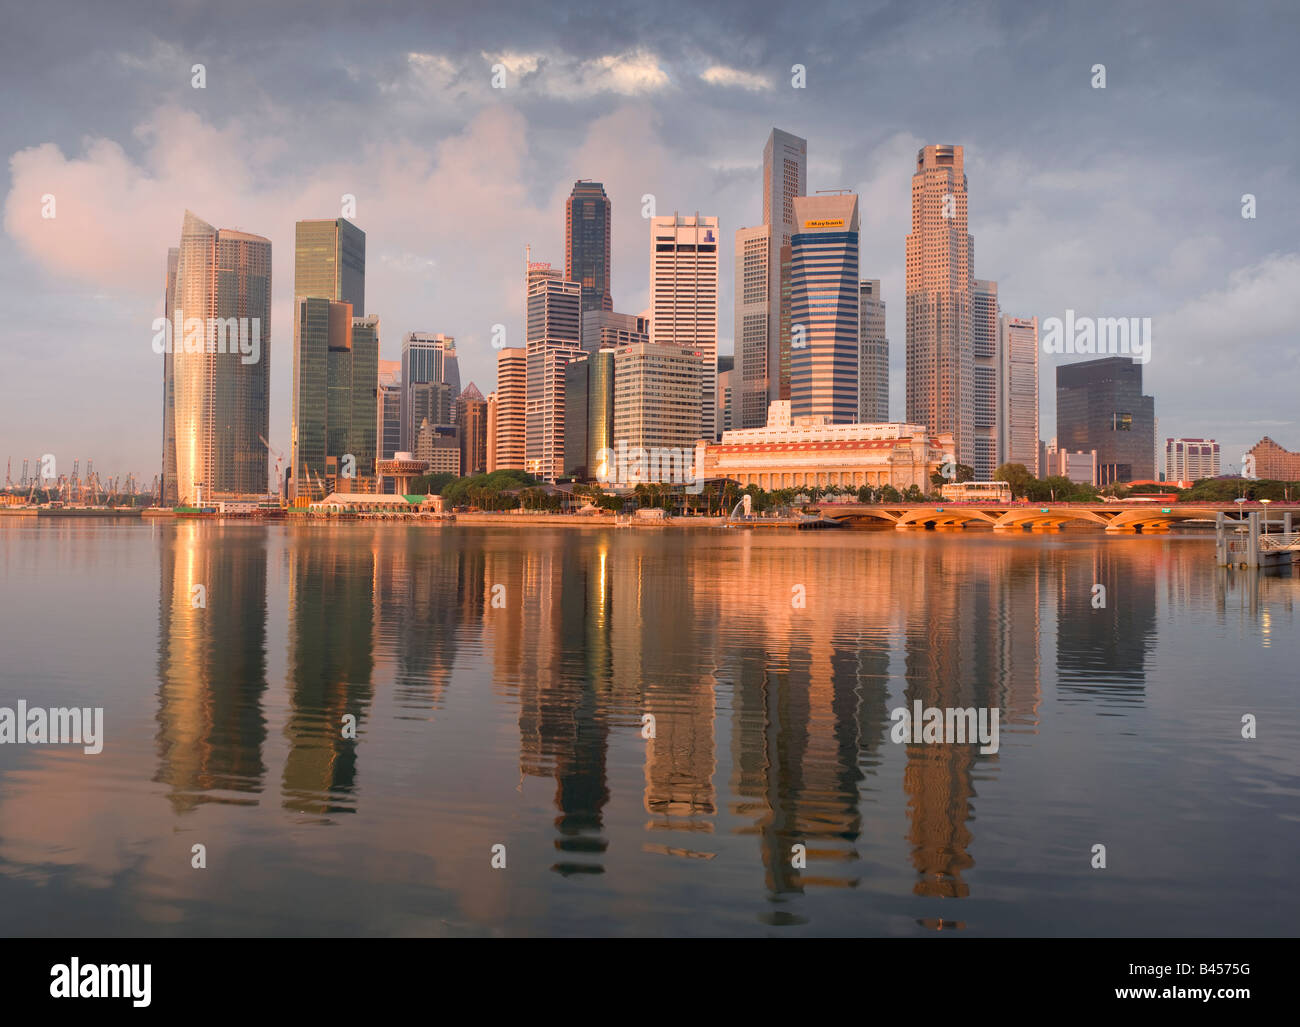 Asien Singapur Singapur Skyline Financial District bei Sonnenaufgang Stockbild